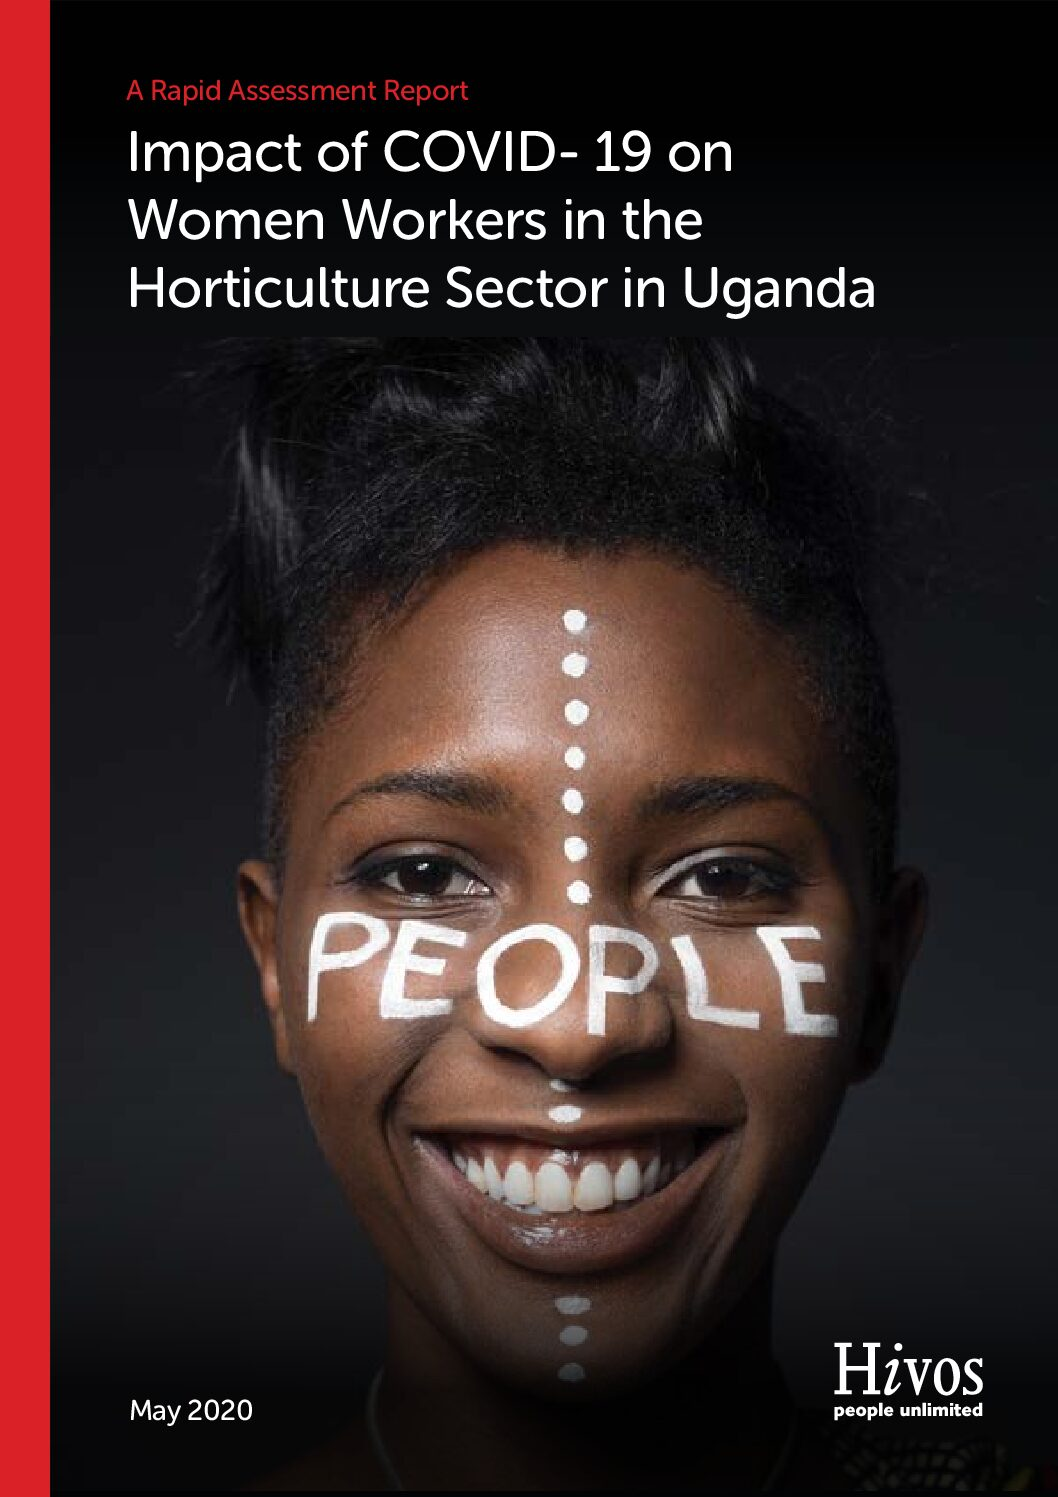 Impact of COVID-19 on Women Workers in the Horticulture Sector in Uganda